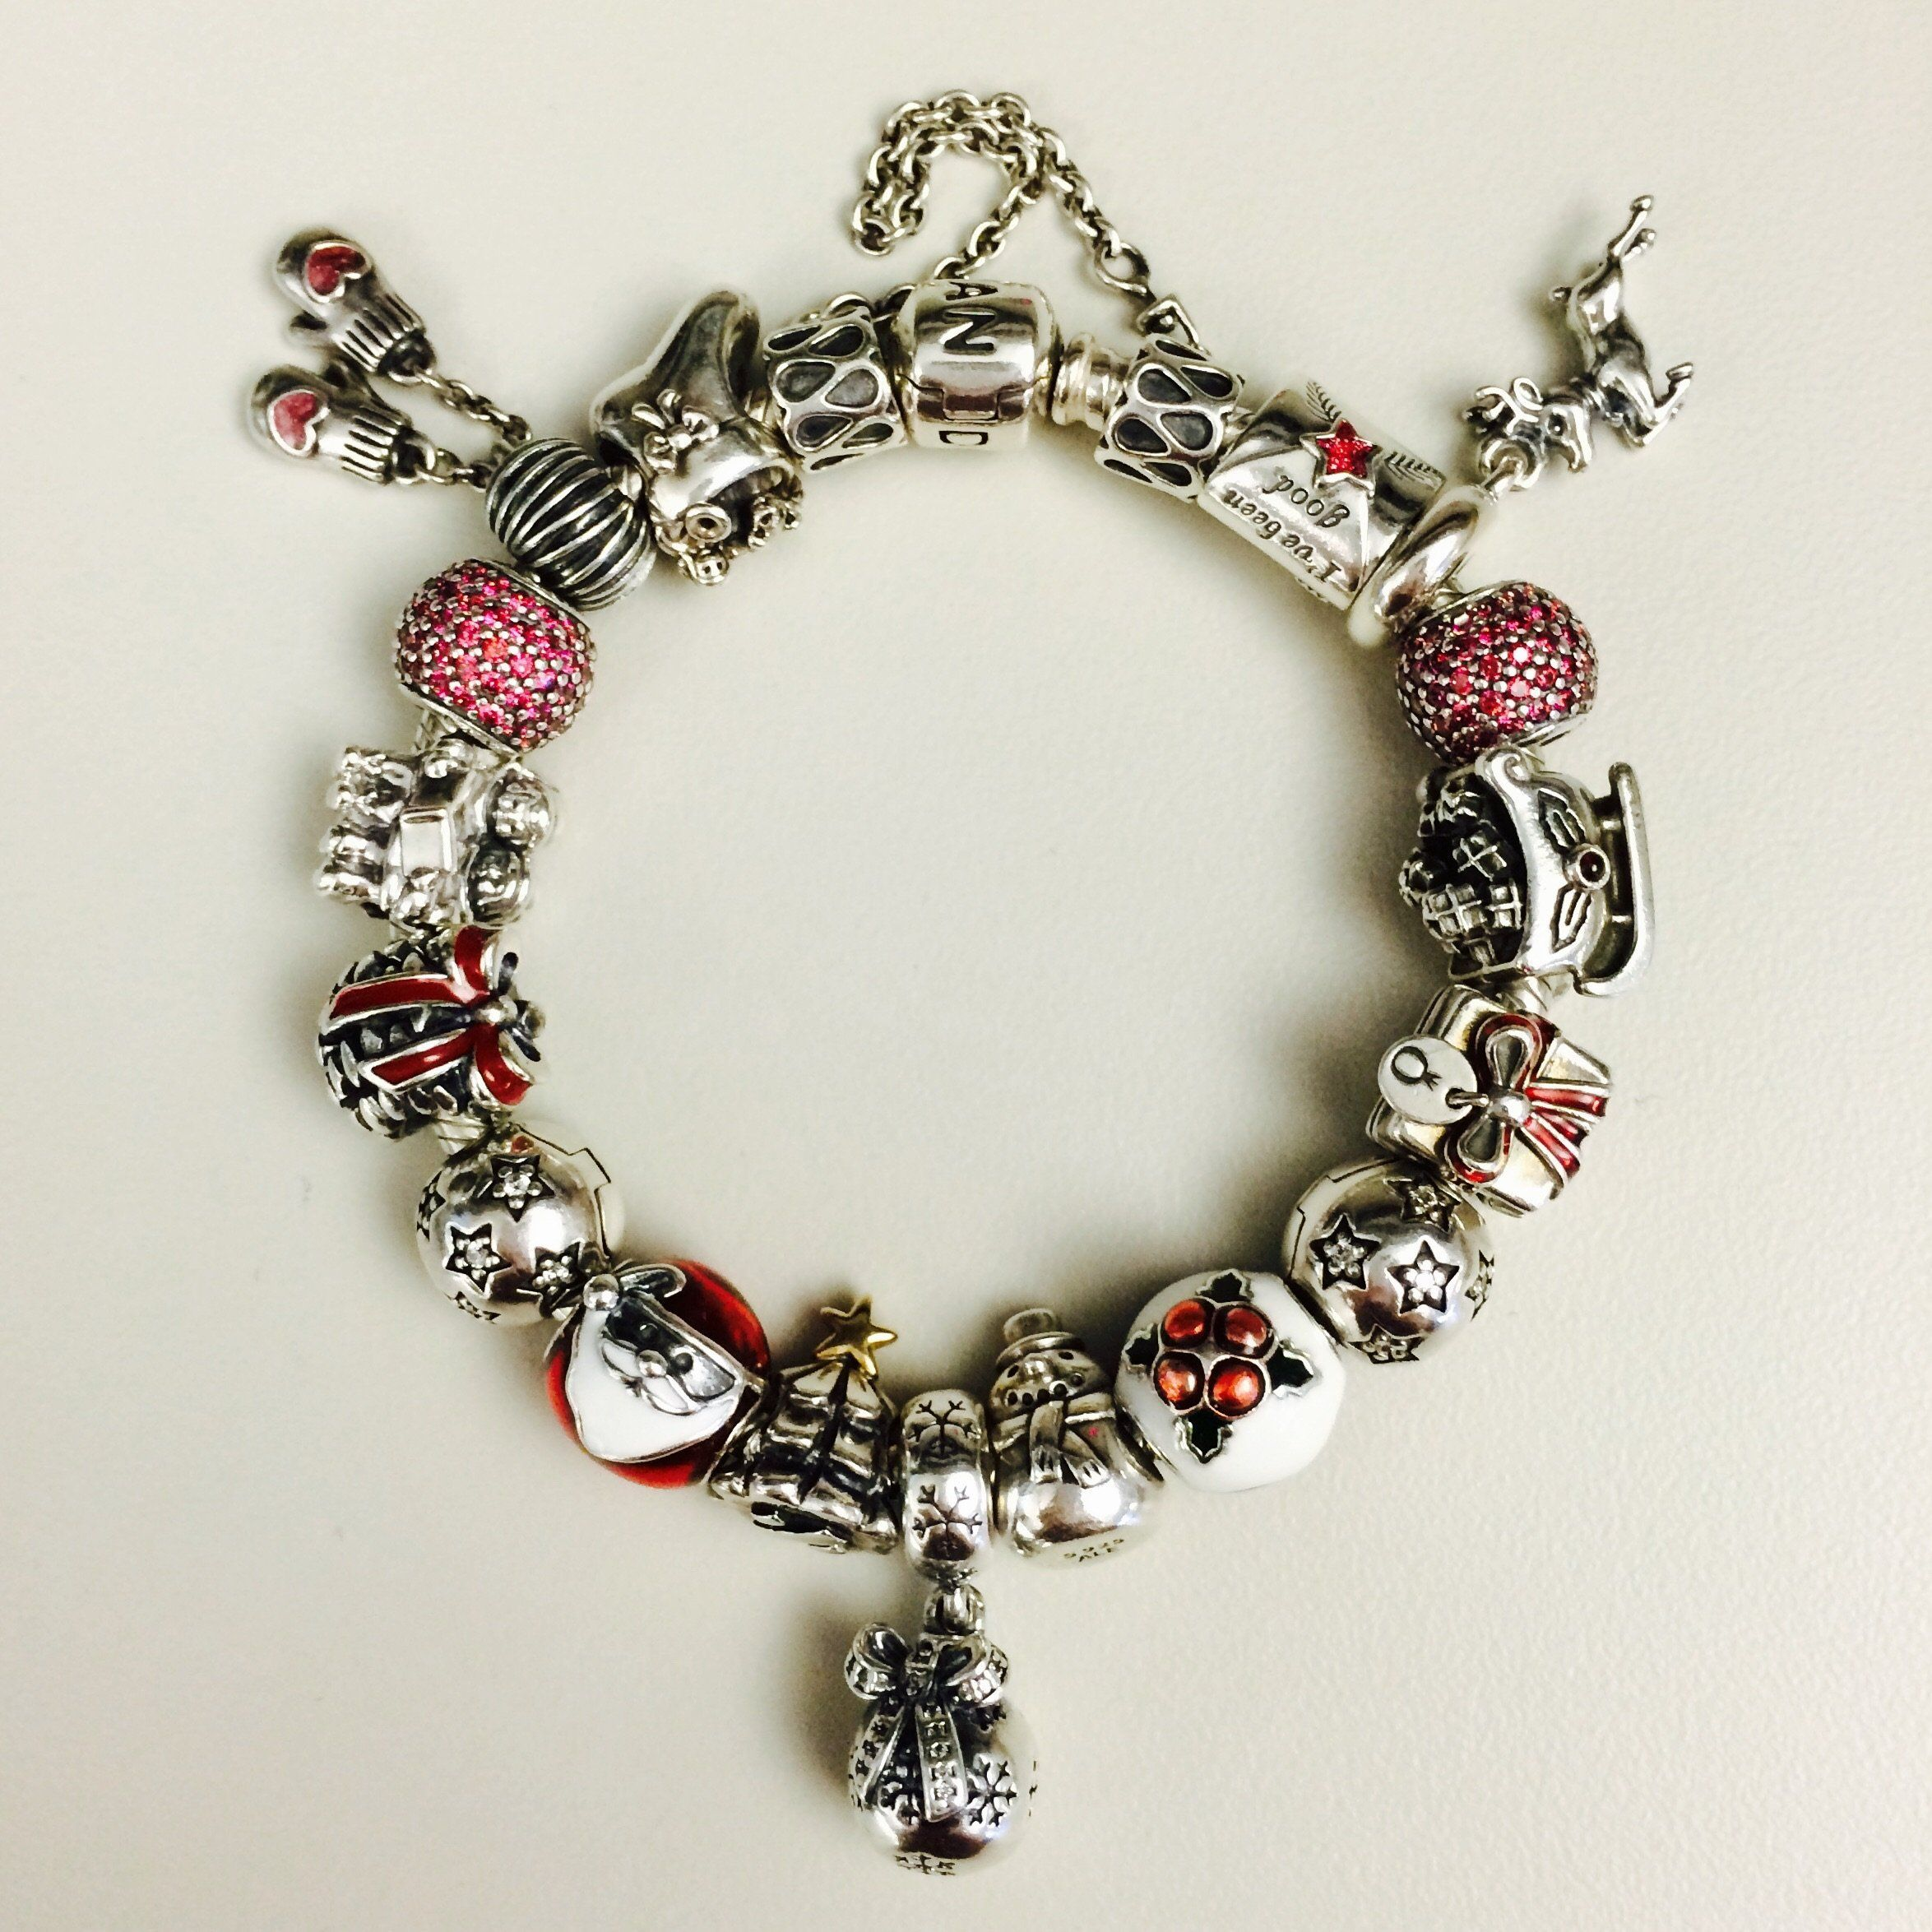 free charm bracelet pandora mall a gift includes of iconic set sets